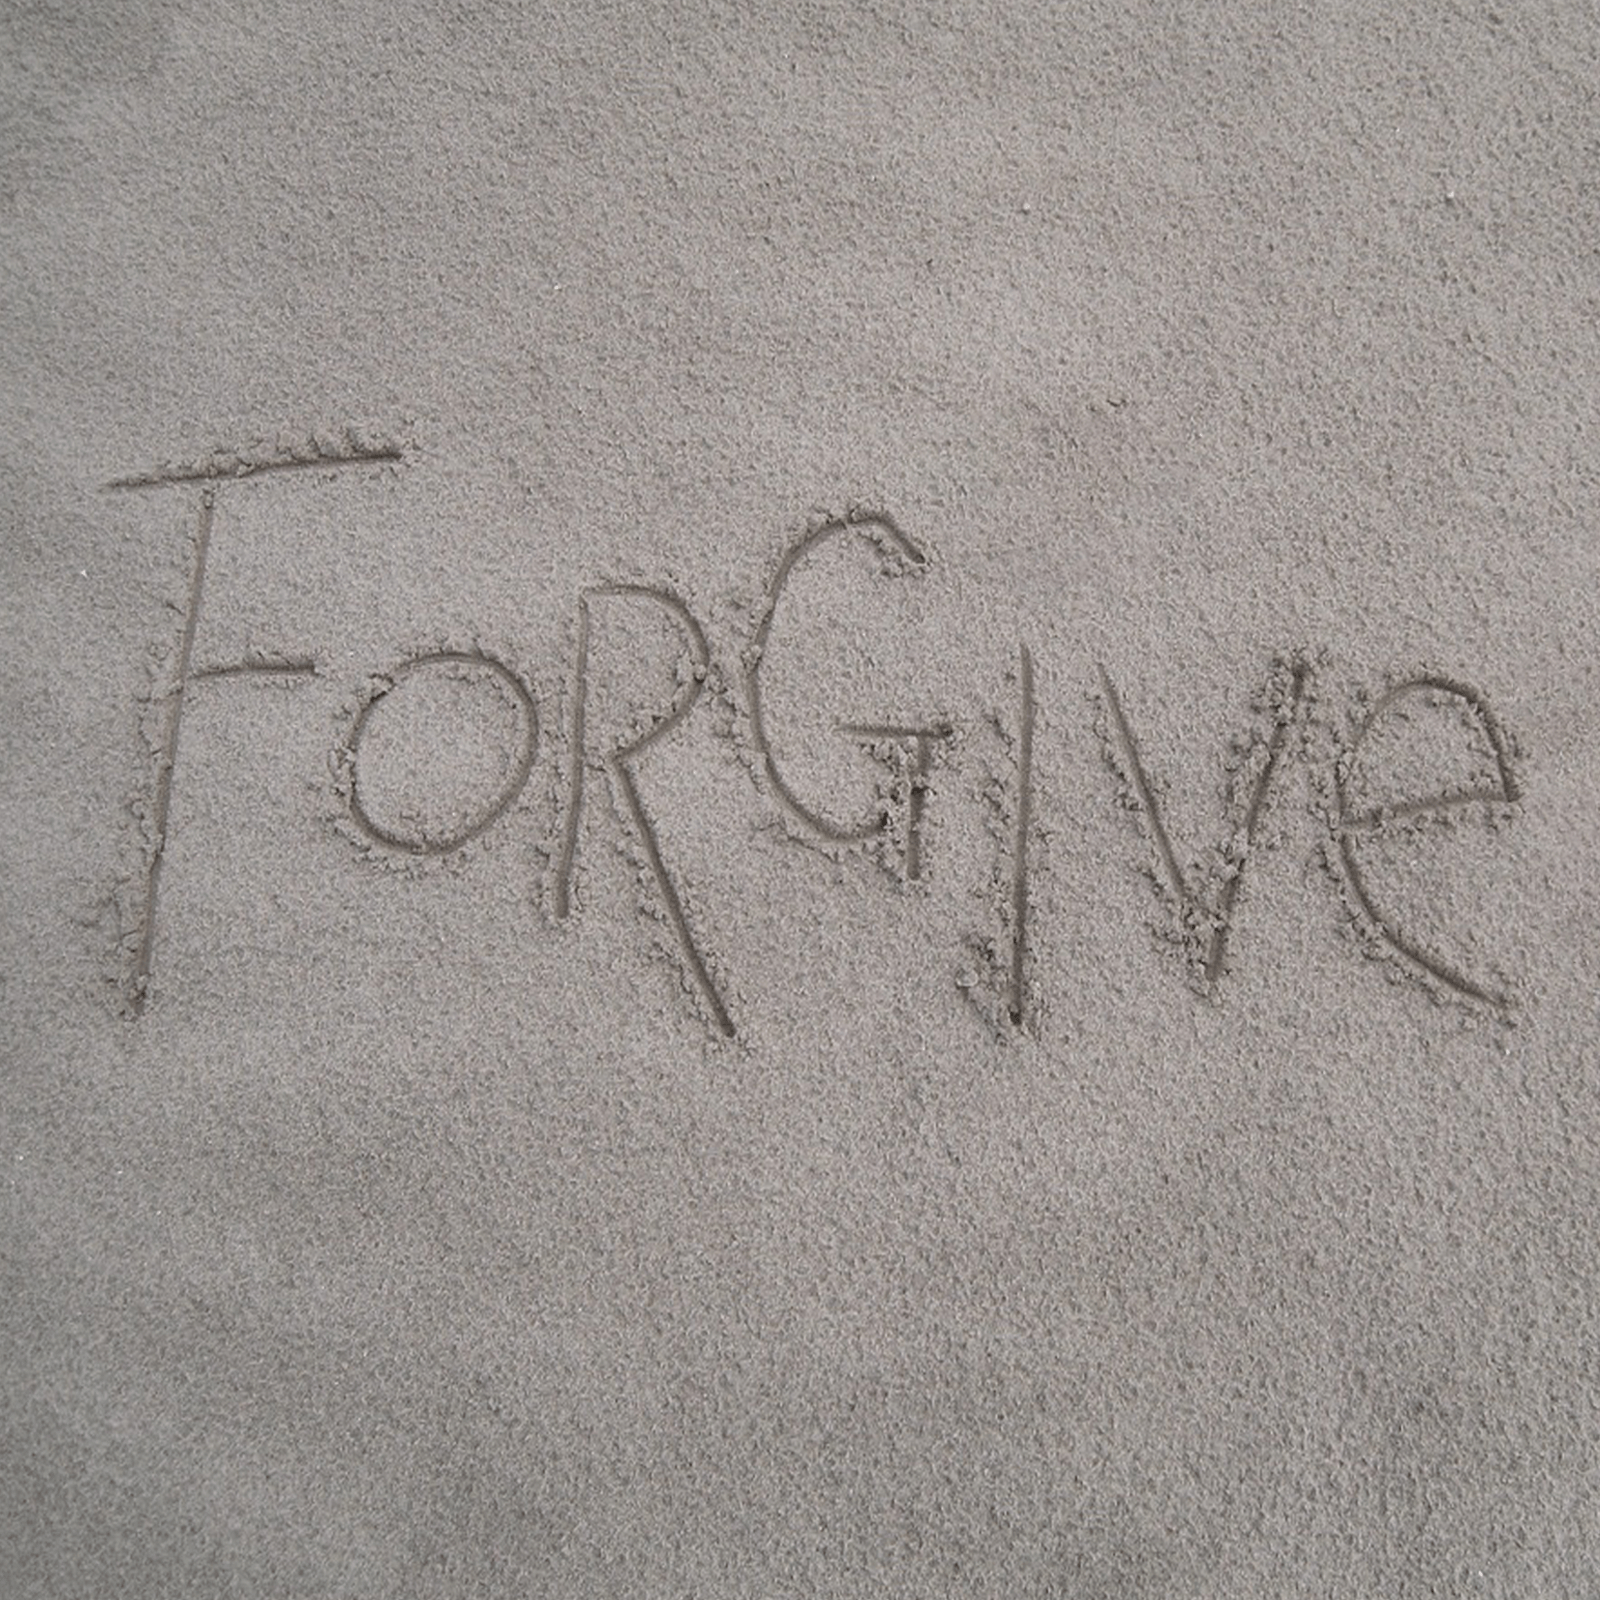 Forgiveness Sets Us Free for Eternity